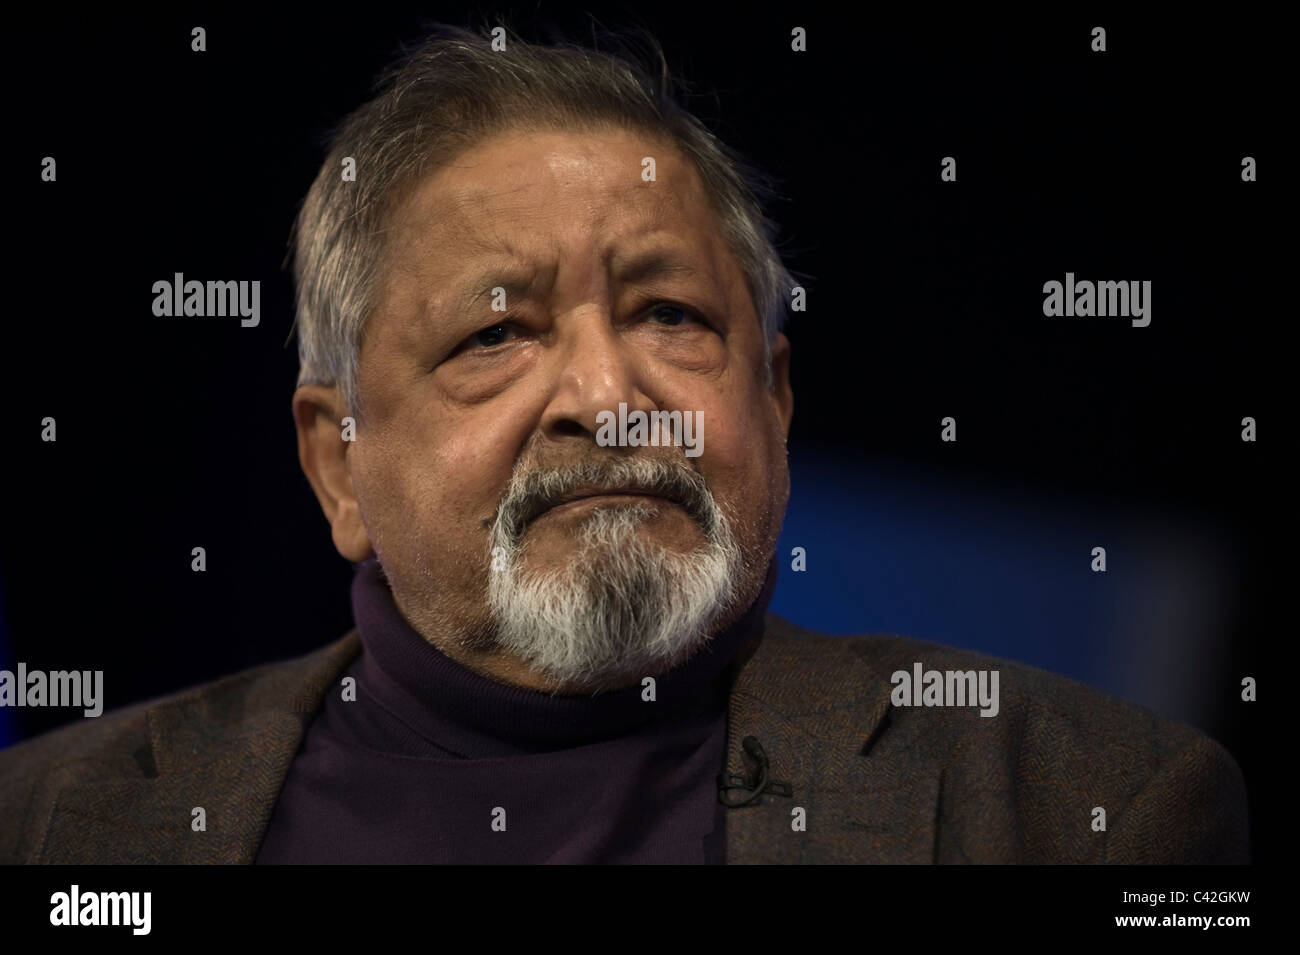 VS Naipaul Nobel Laureate author pictured at Hay Festival 2011 - Stock Image